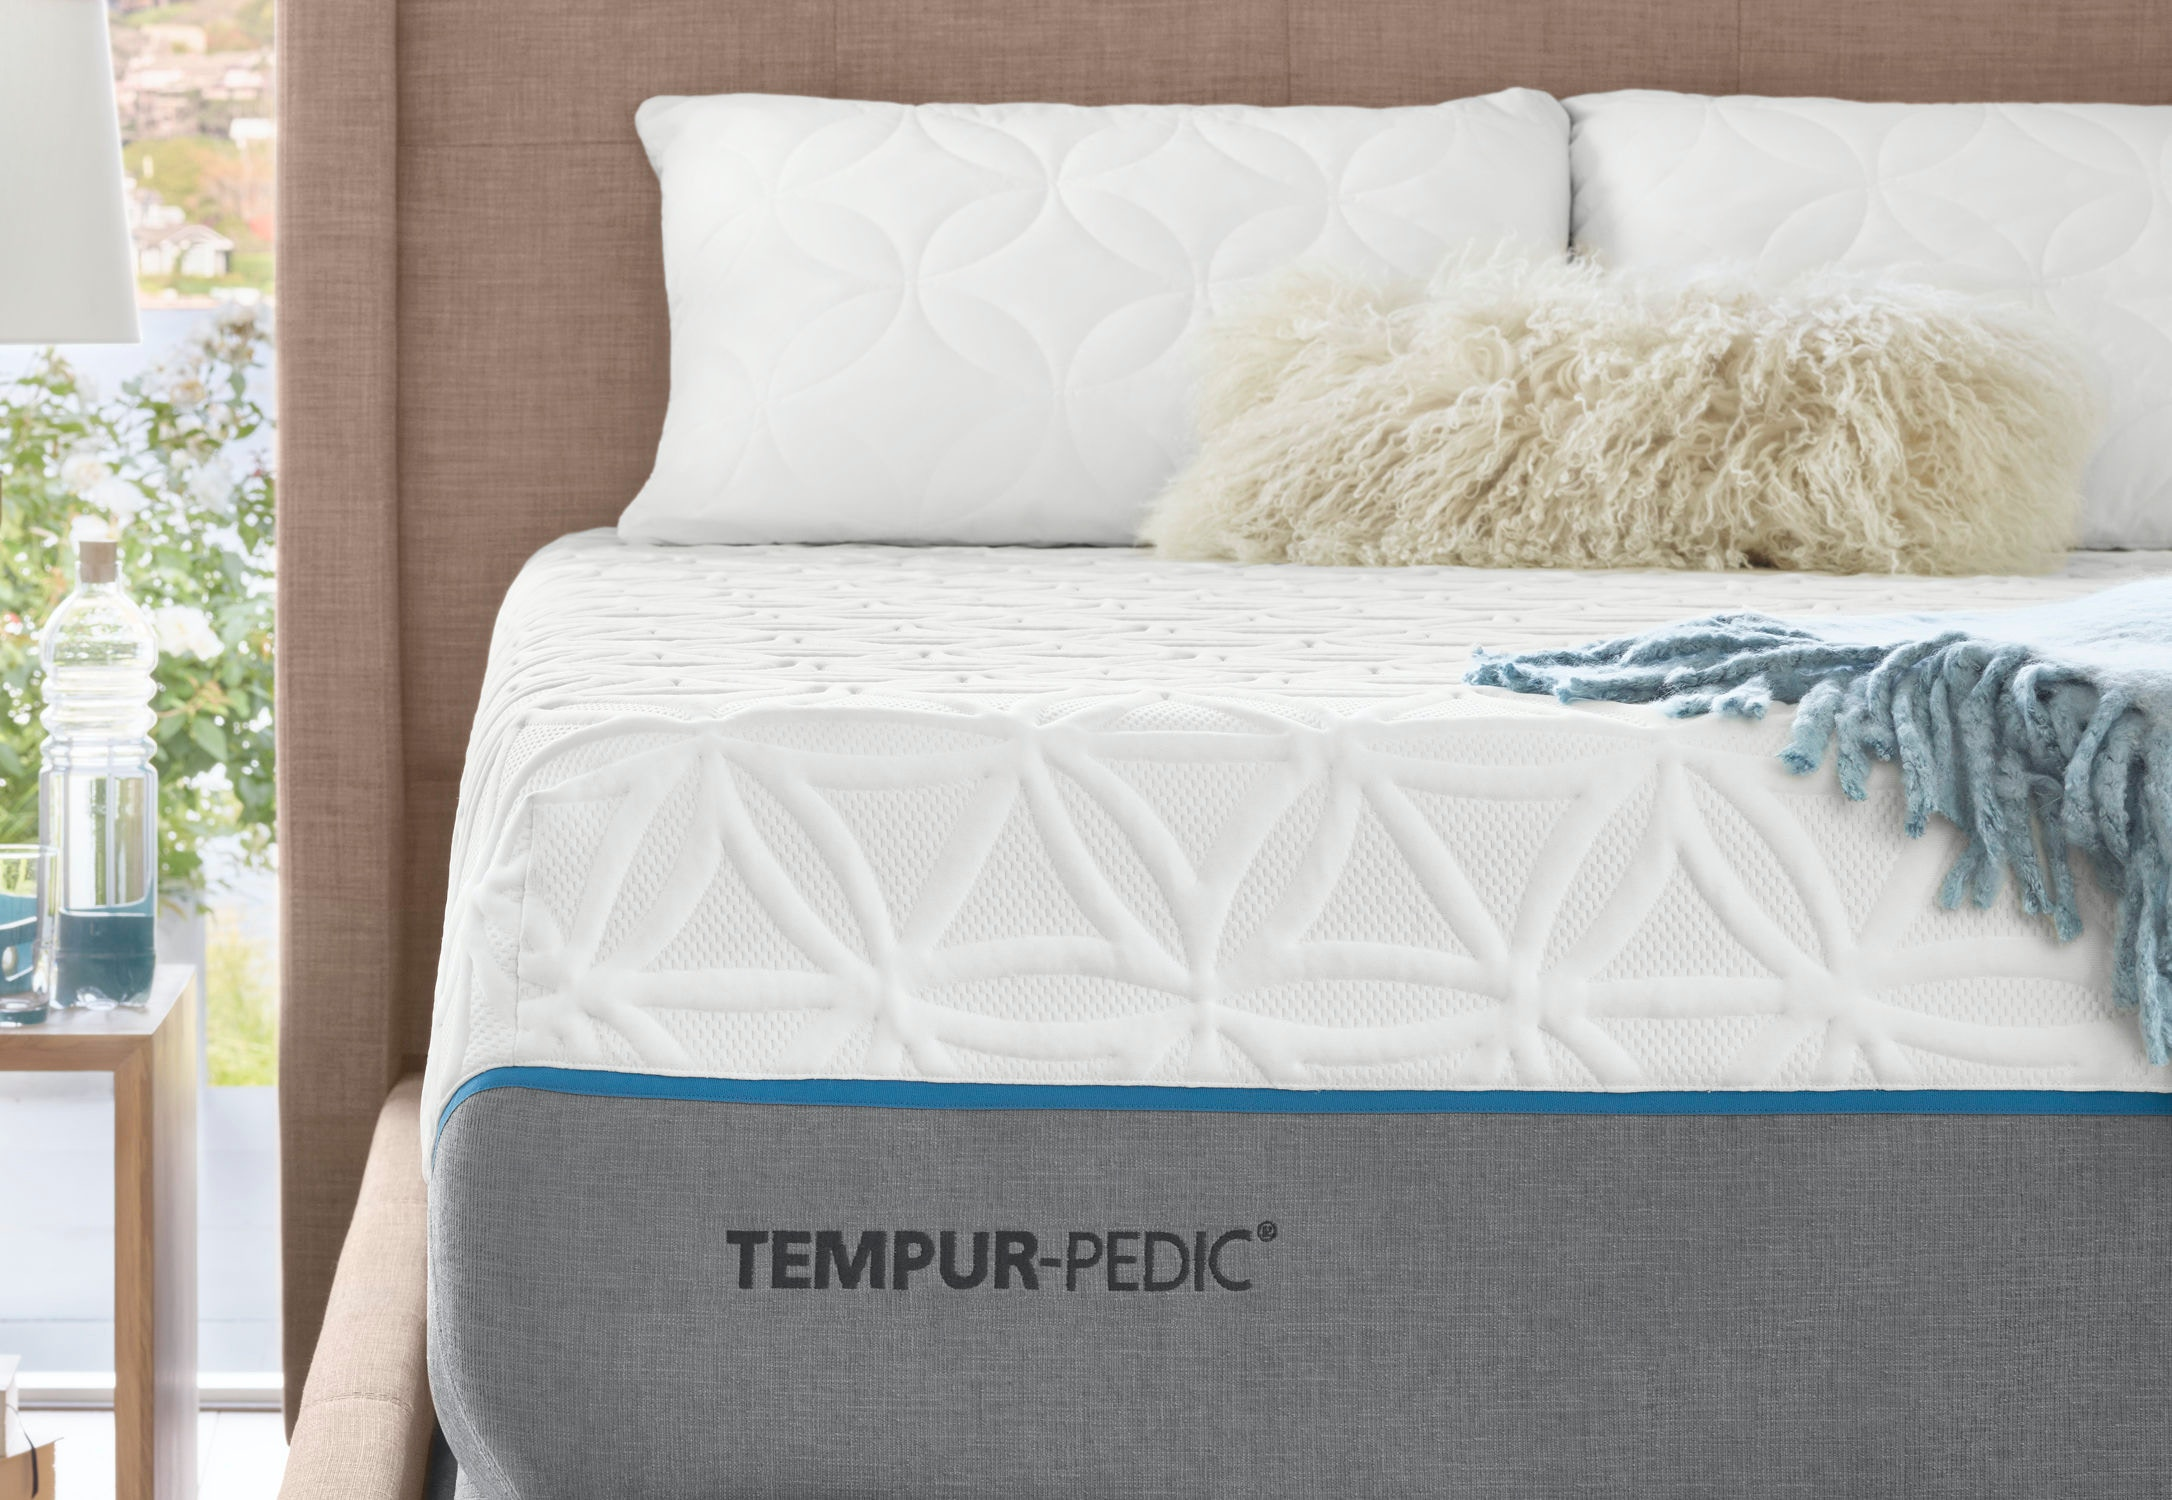 tempurcloud u2013 luxe breeze 20 u2013 mattress twin xl or calking